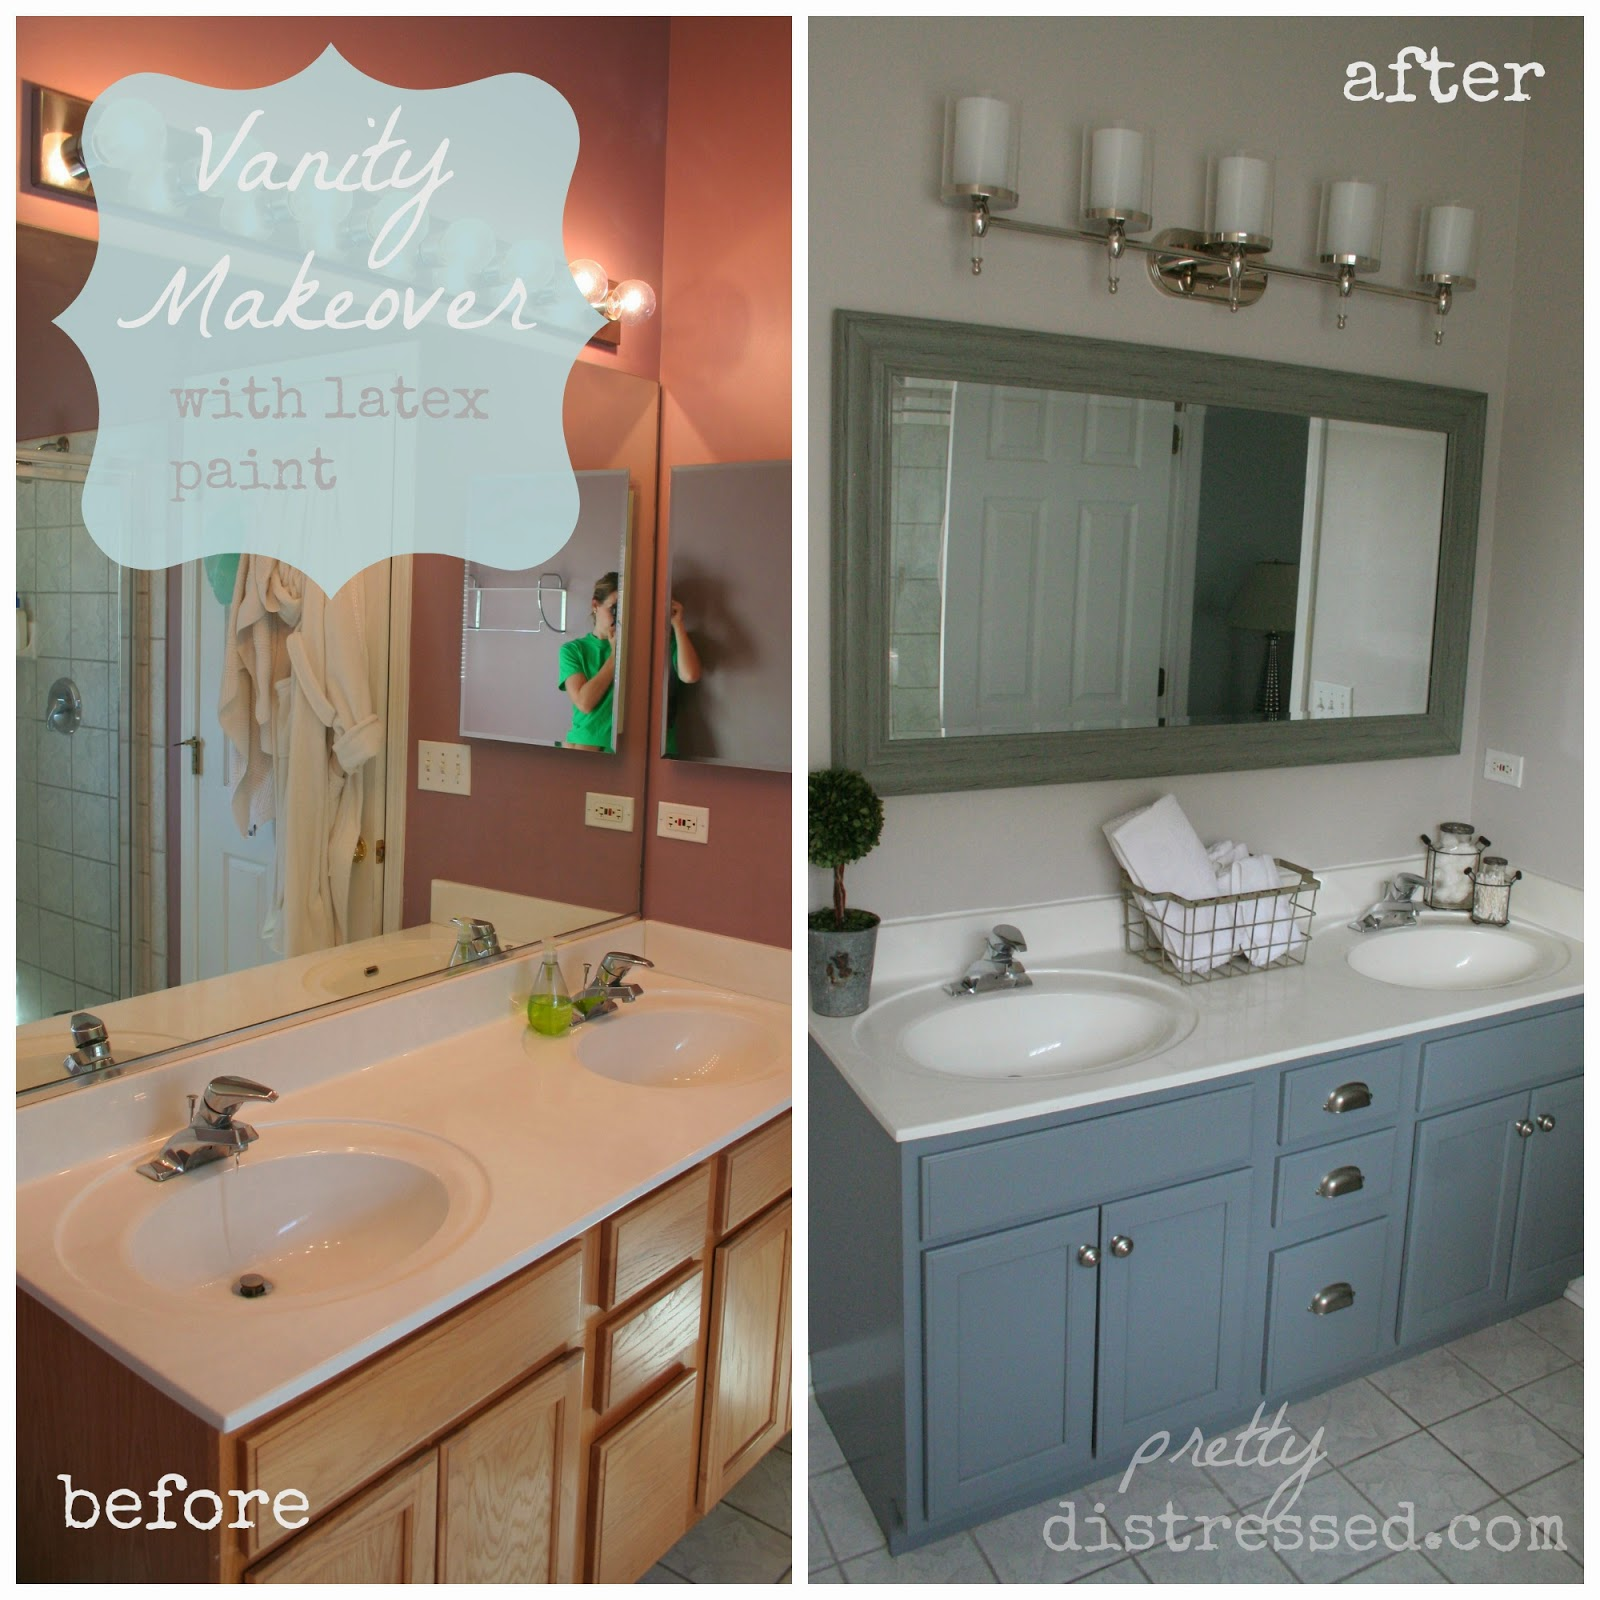 How to paint bathroom countertops - Bathroom Vanity Makeover With Latex Paint